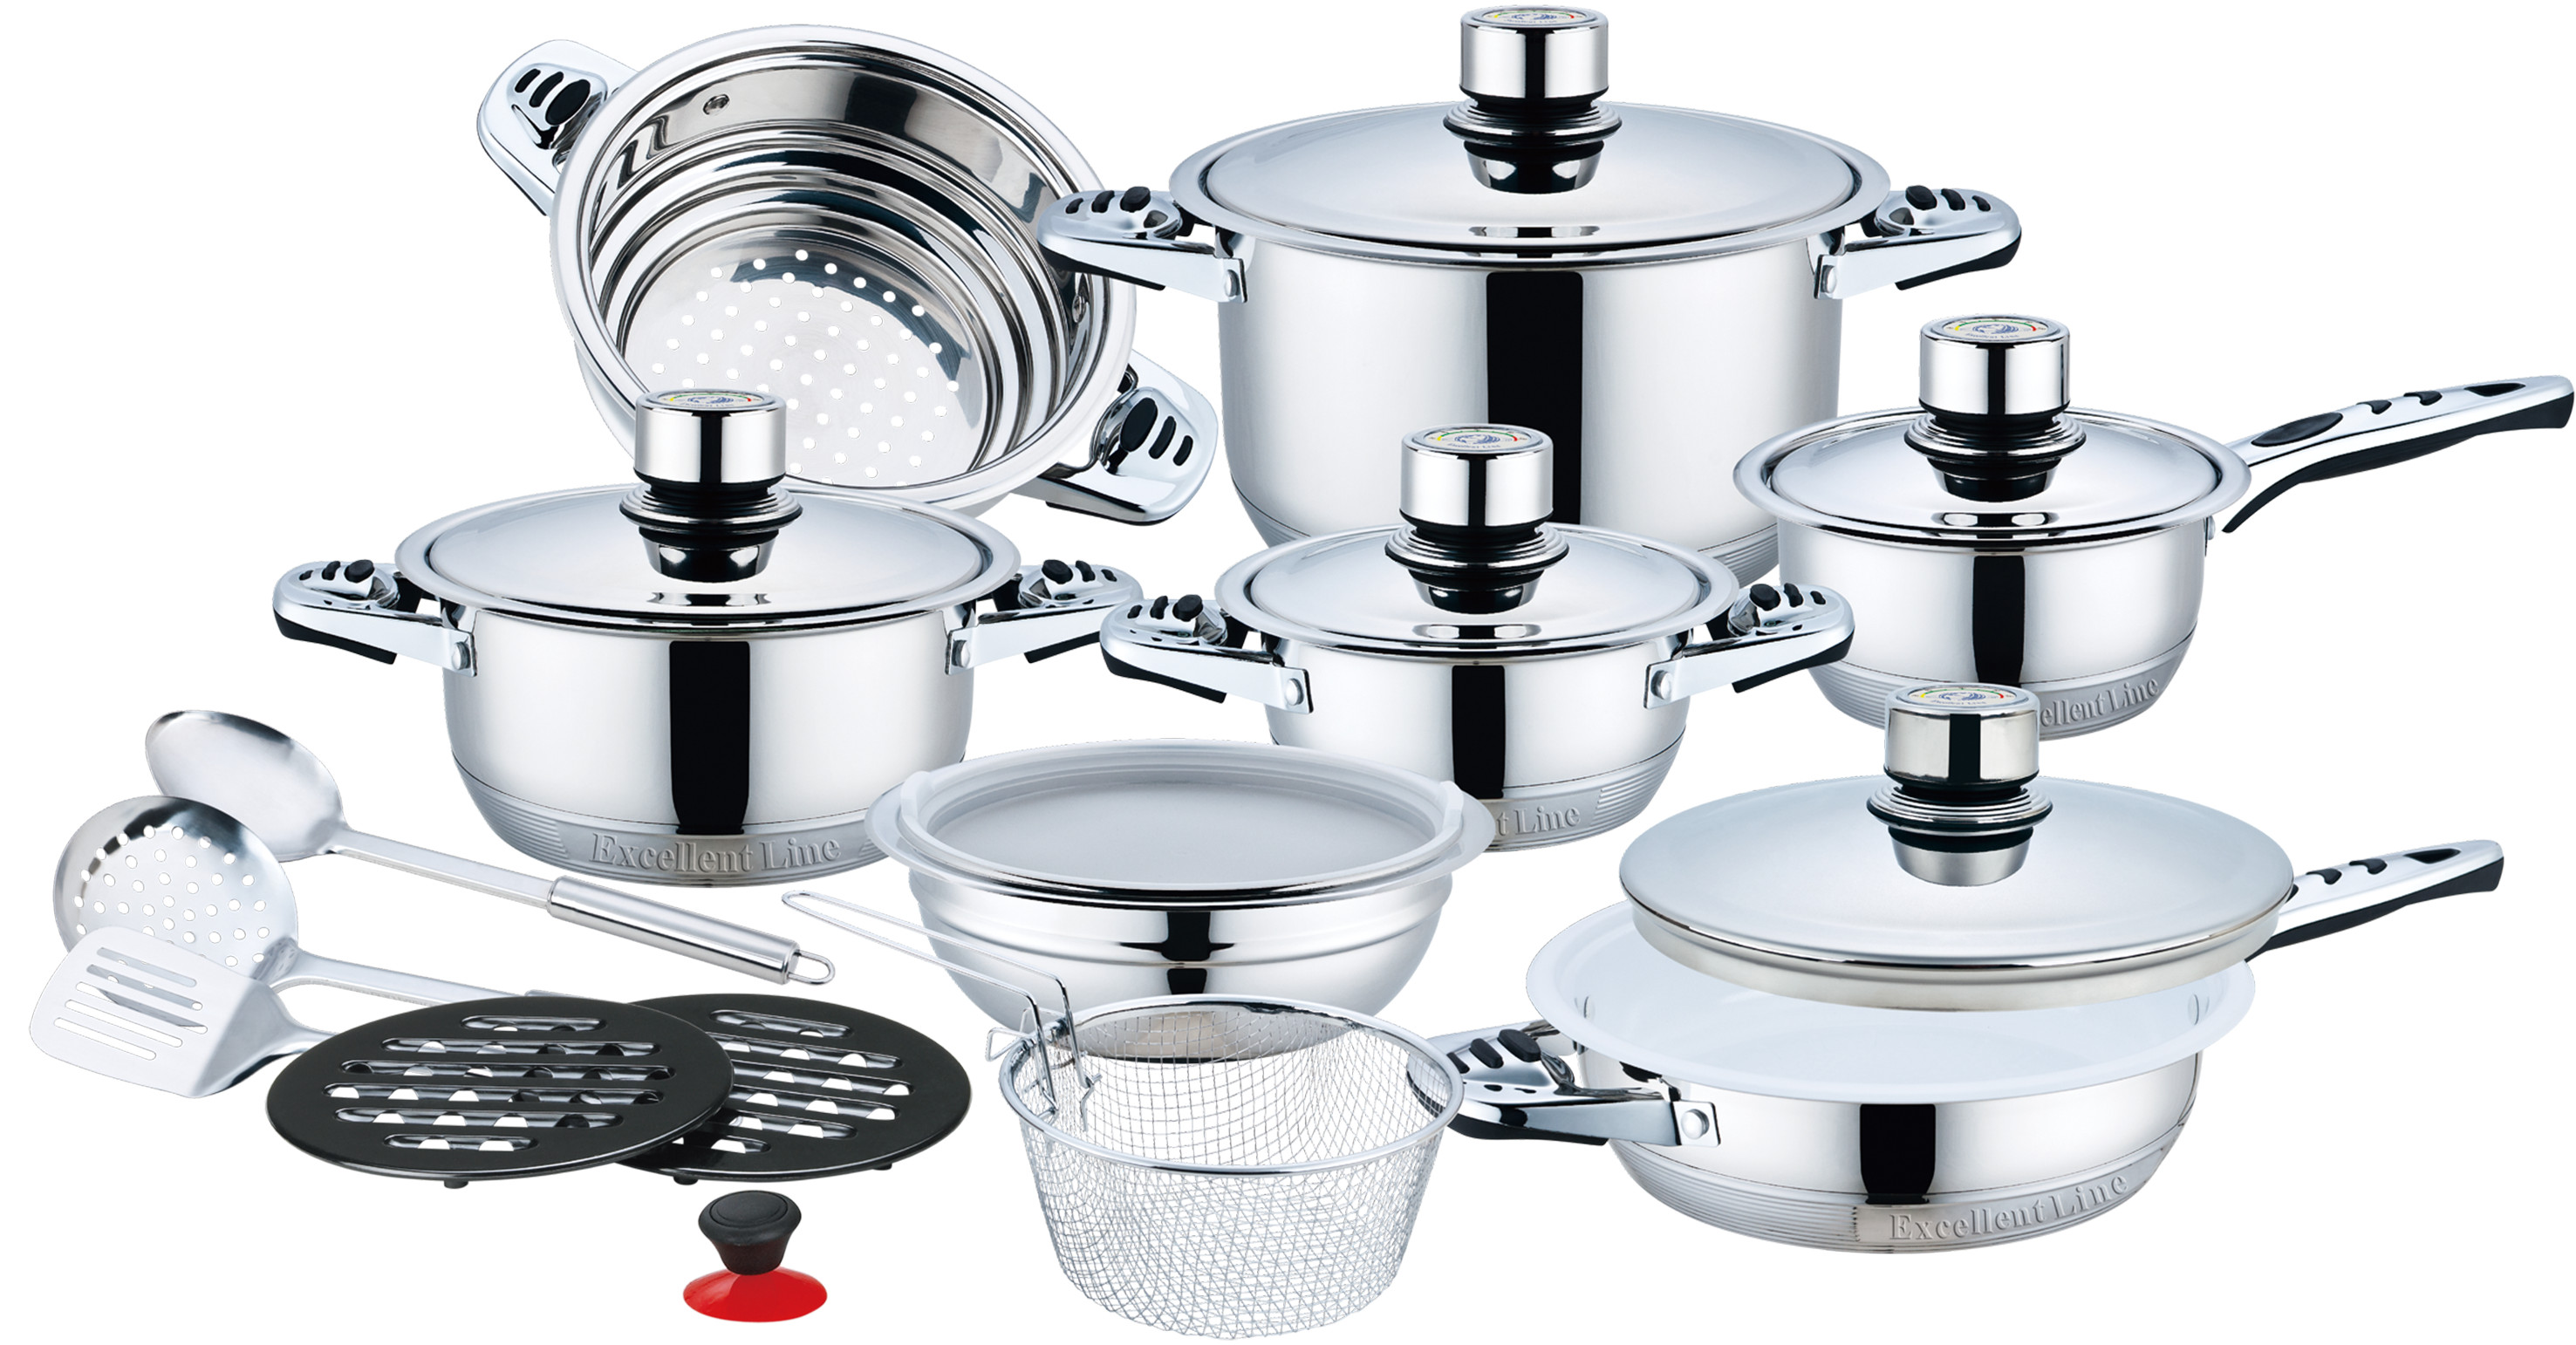 21pcs stainless steel cookware set with ceramic coating